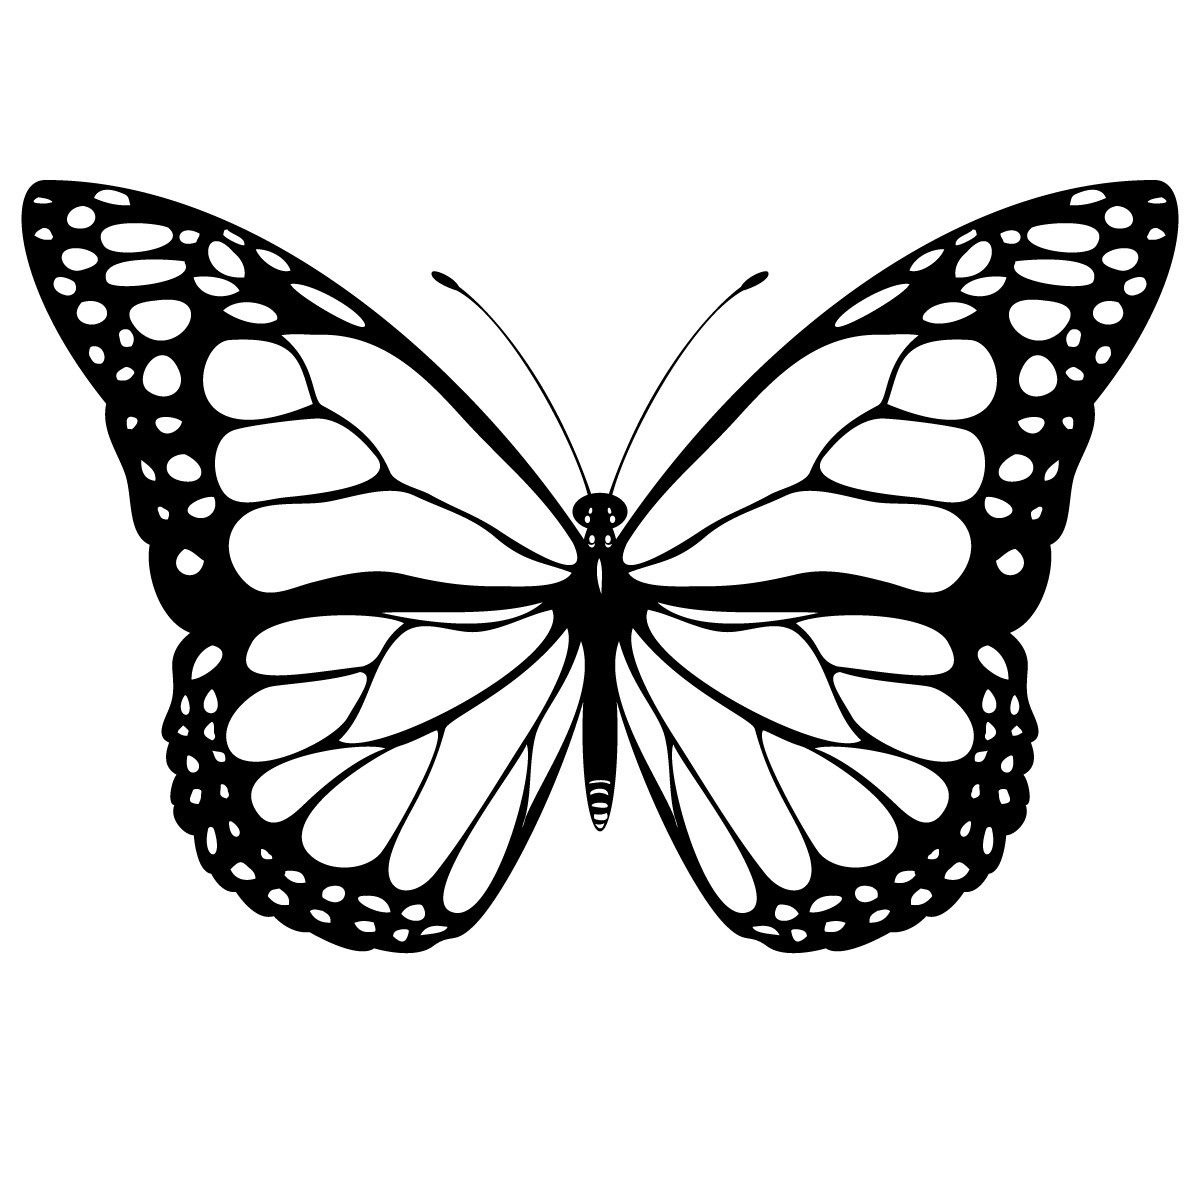 Free Printable Butterfly Coloring Pages For Kids   Butterfly - Free Printable Butterfly Coloring Pages